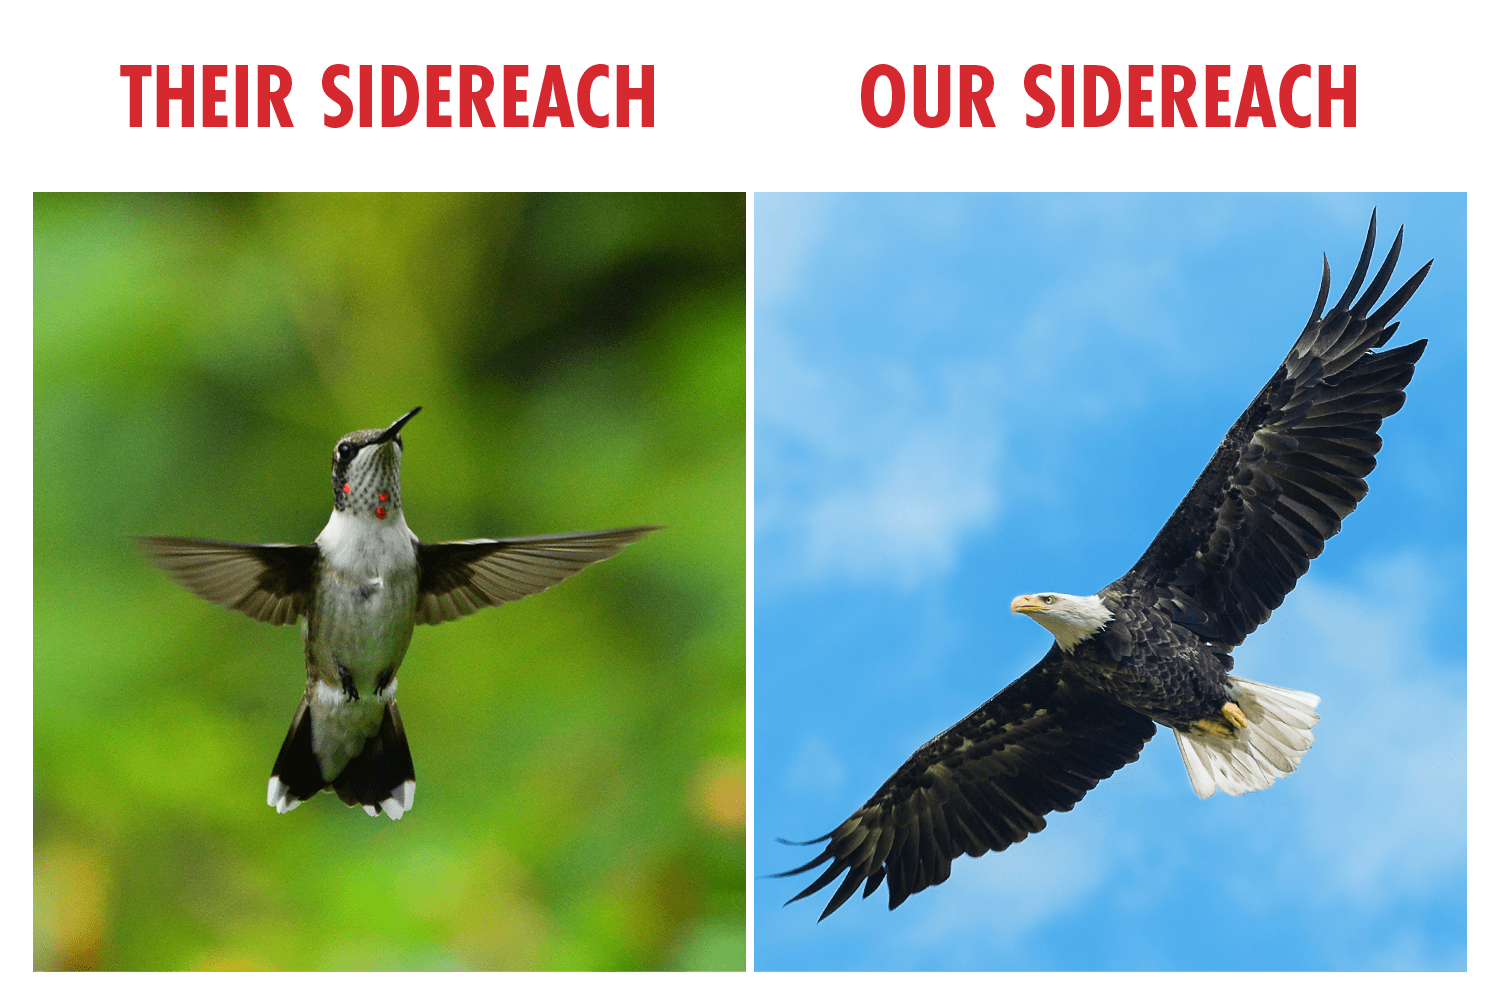 image analogy of sidereach to wingspans of hummingbird and eagle